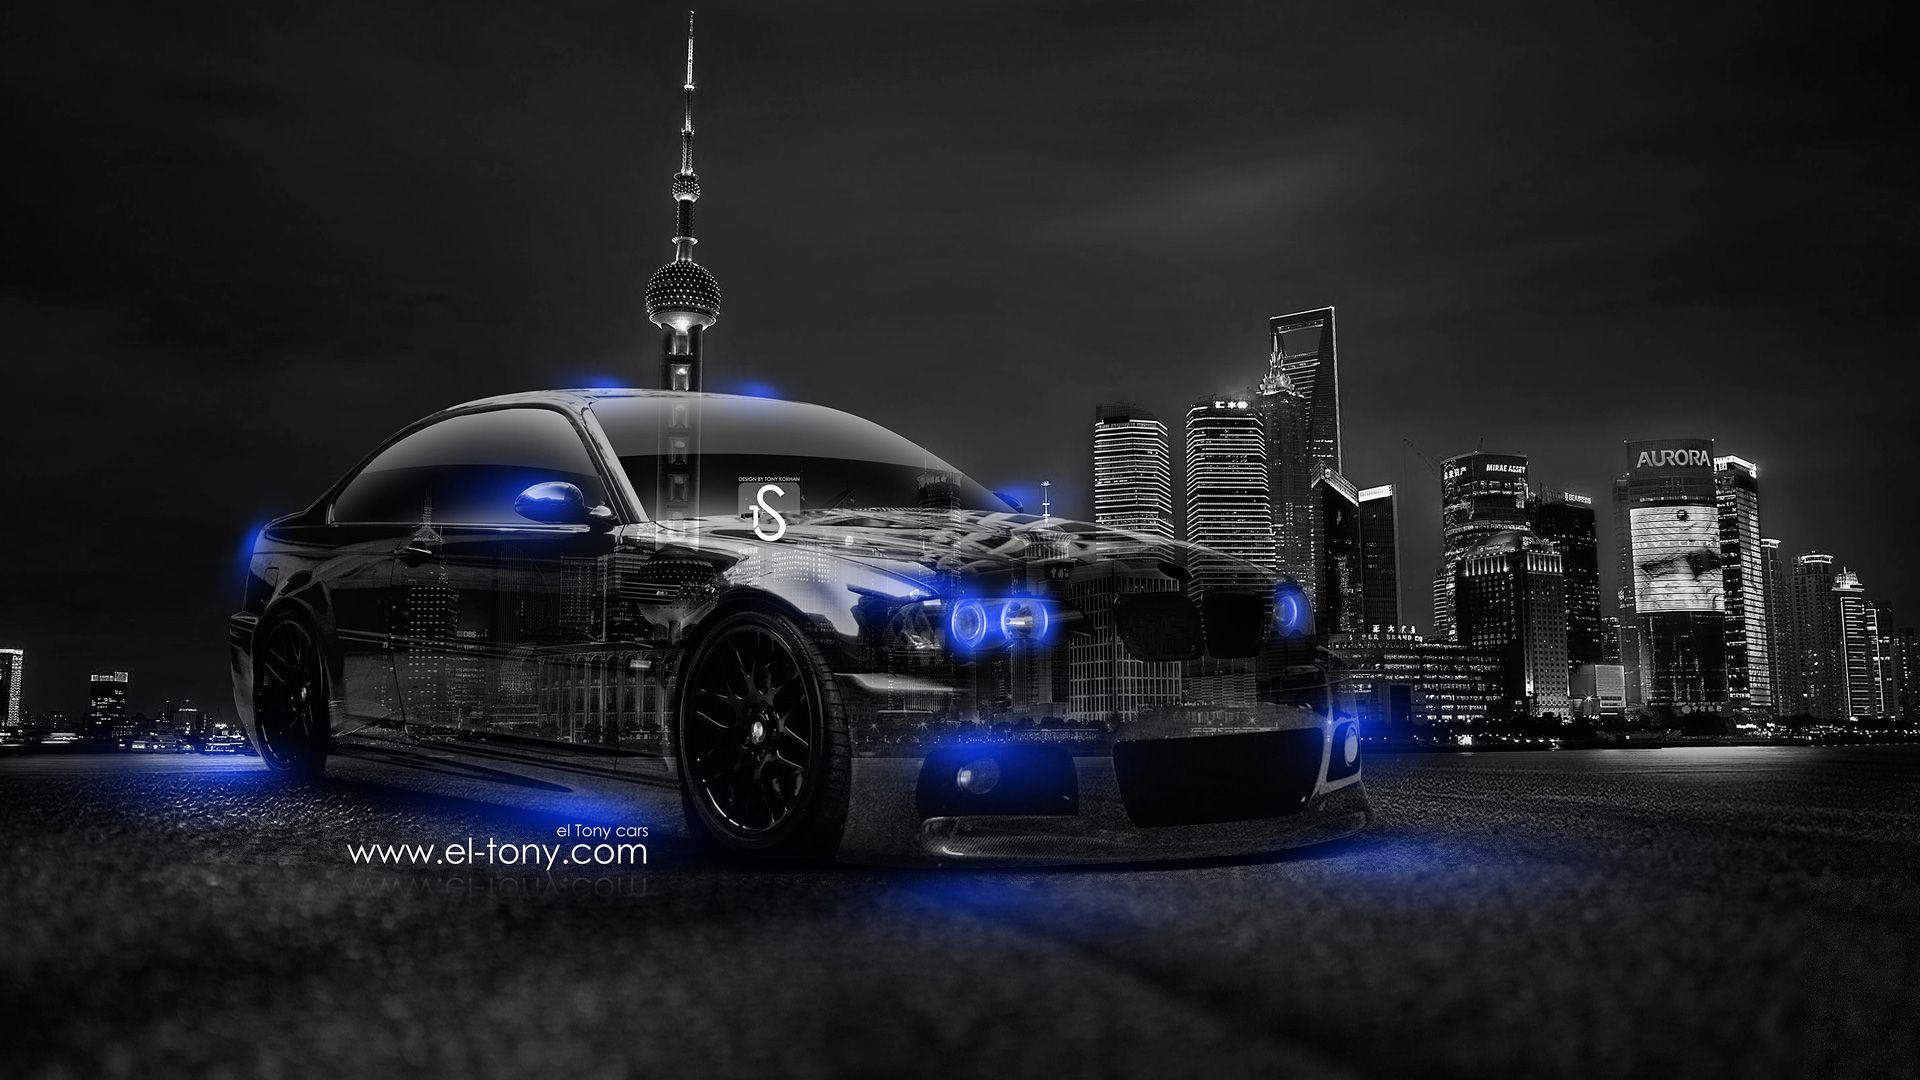 BMW M3 Crystal City Car 2014 | El Tony